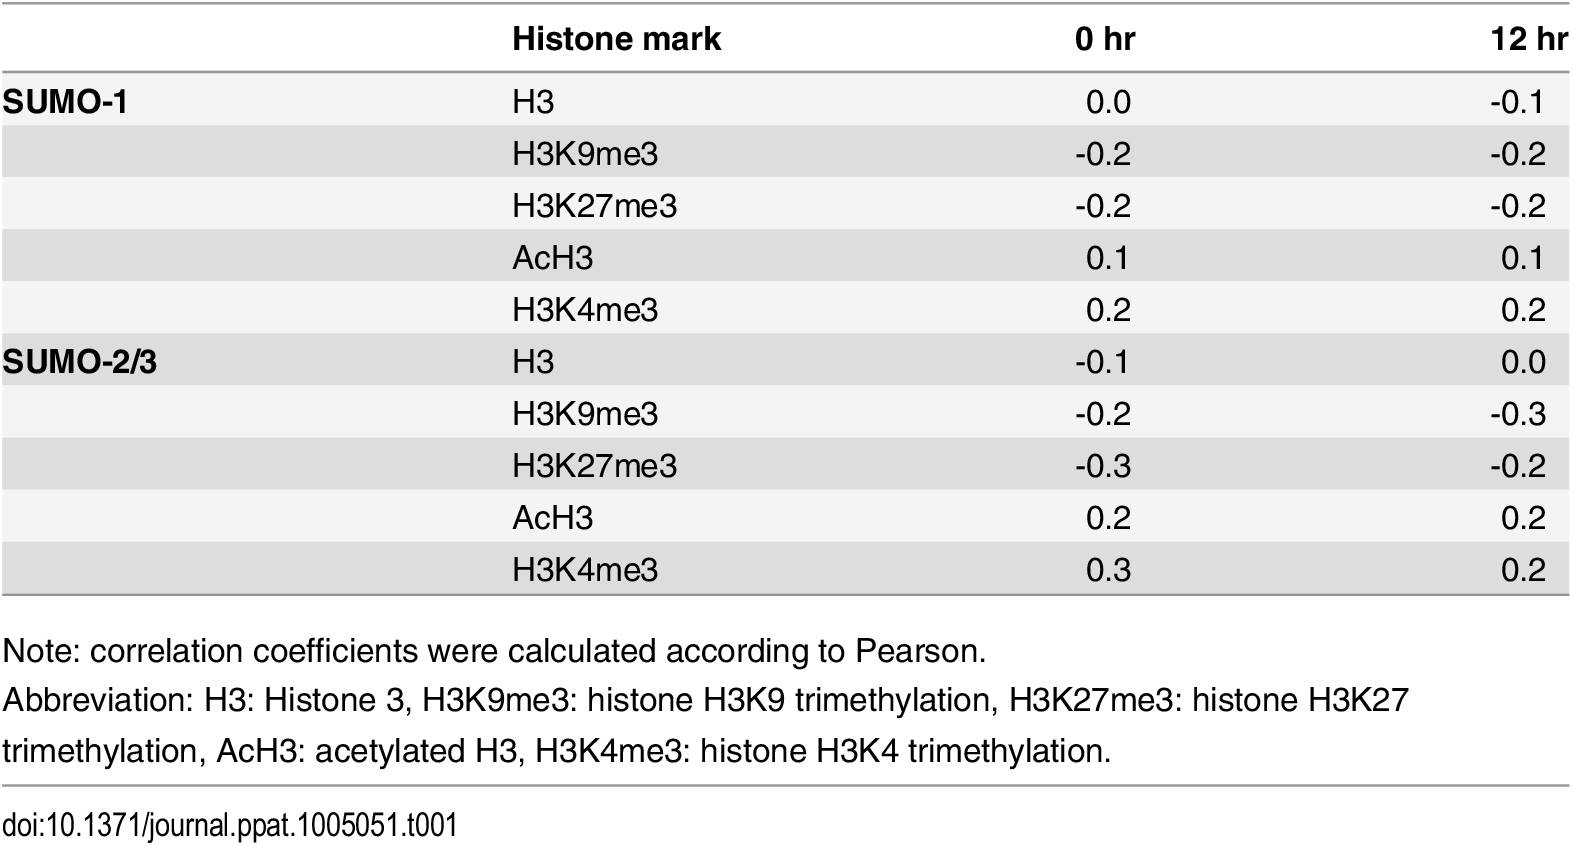 Correlation between SUMO paralog occupancy and histone marks in KSHV genome.